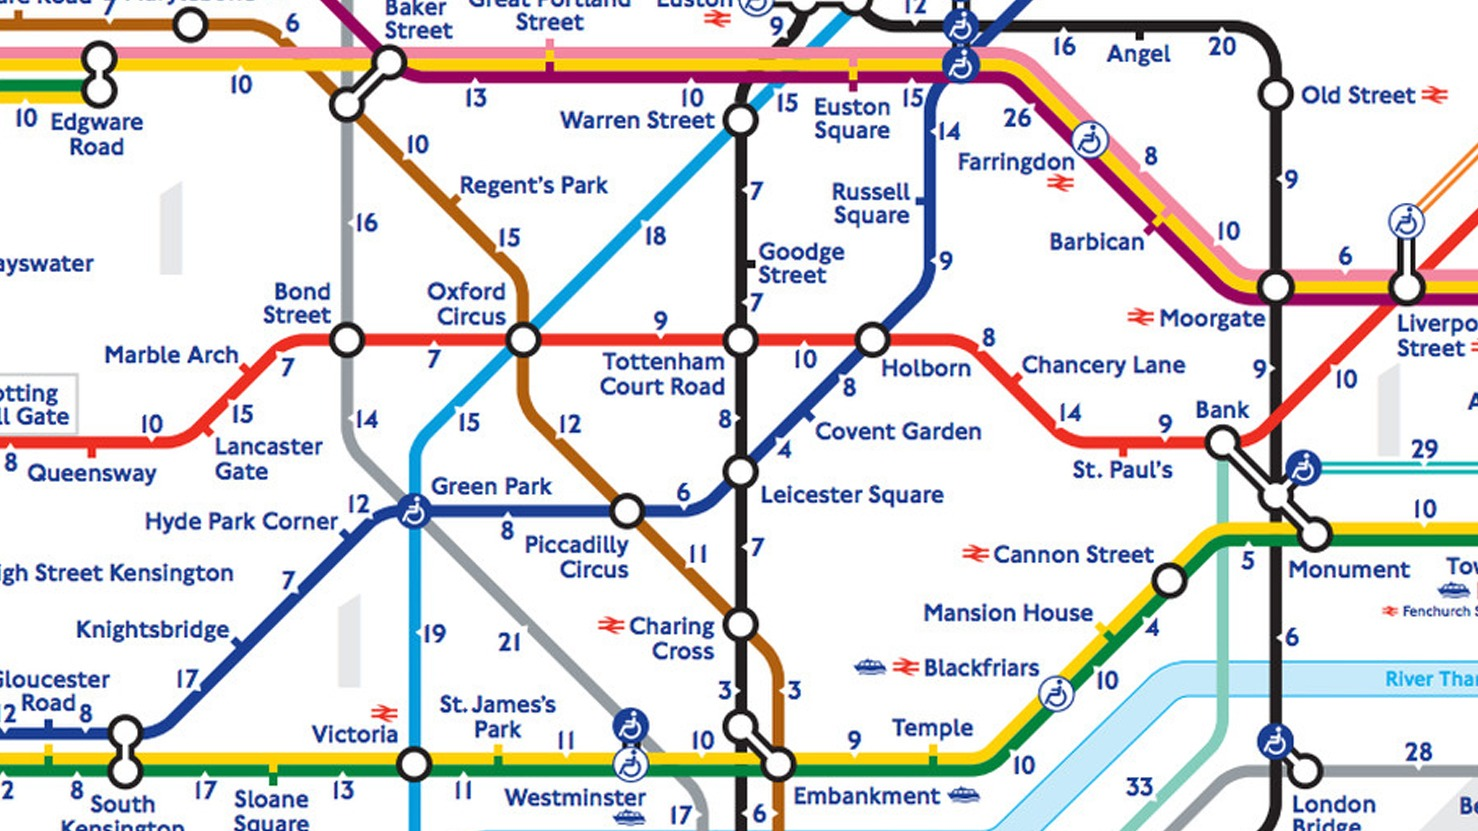 How an Electrical Engineer Revolutionized the UX of Modern Transit